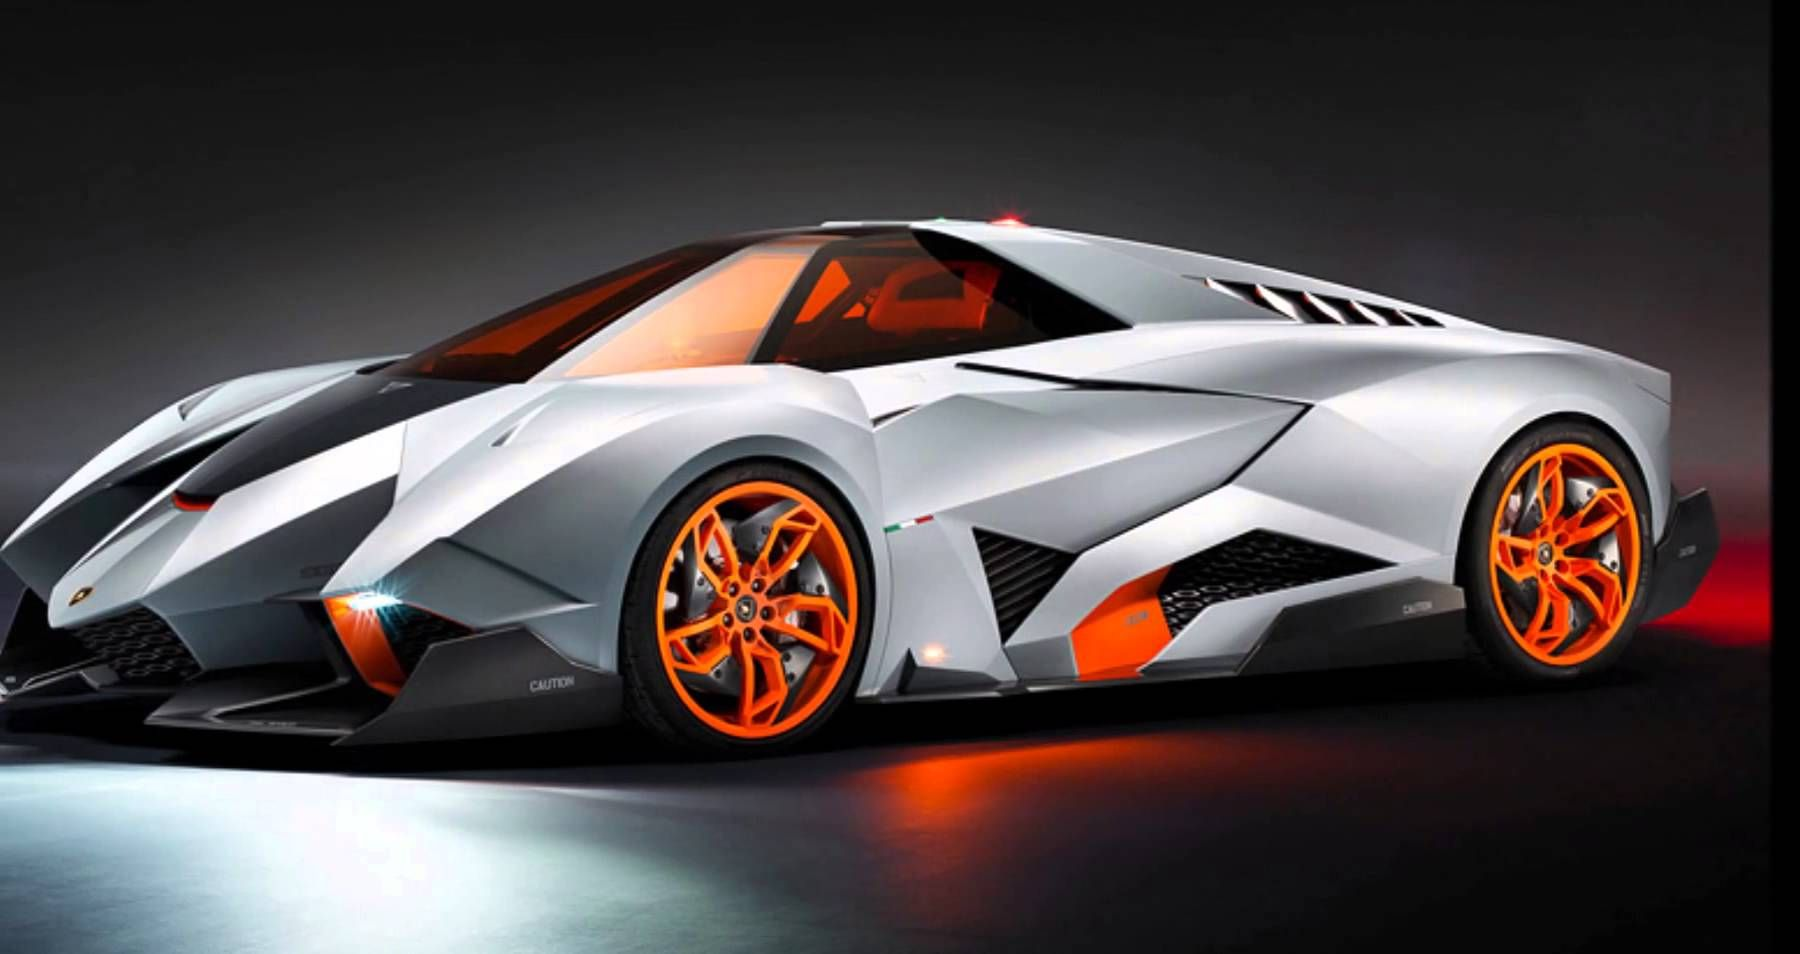 awesome cars and motorcycles lambo - Google Search   Nice cars and ...